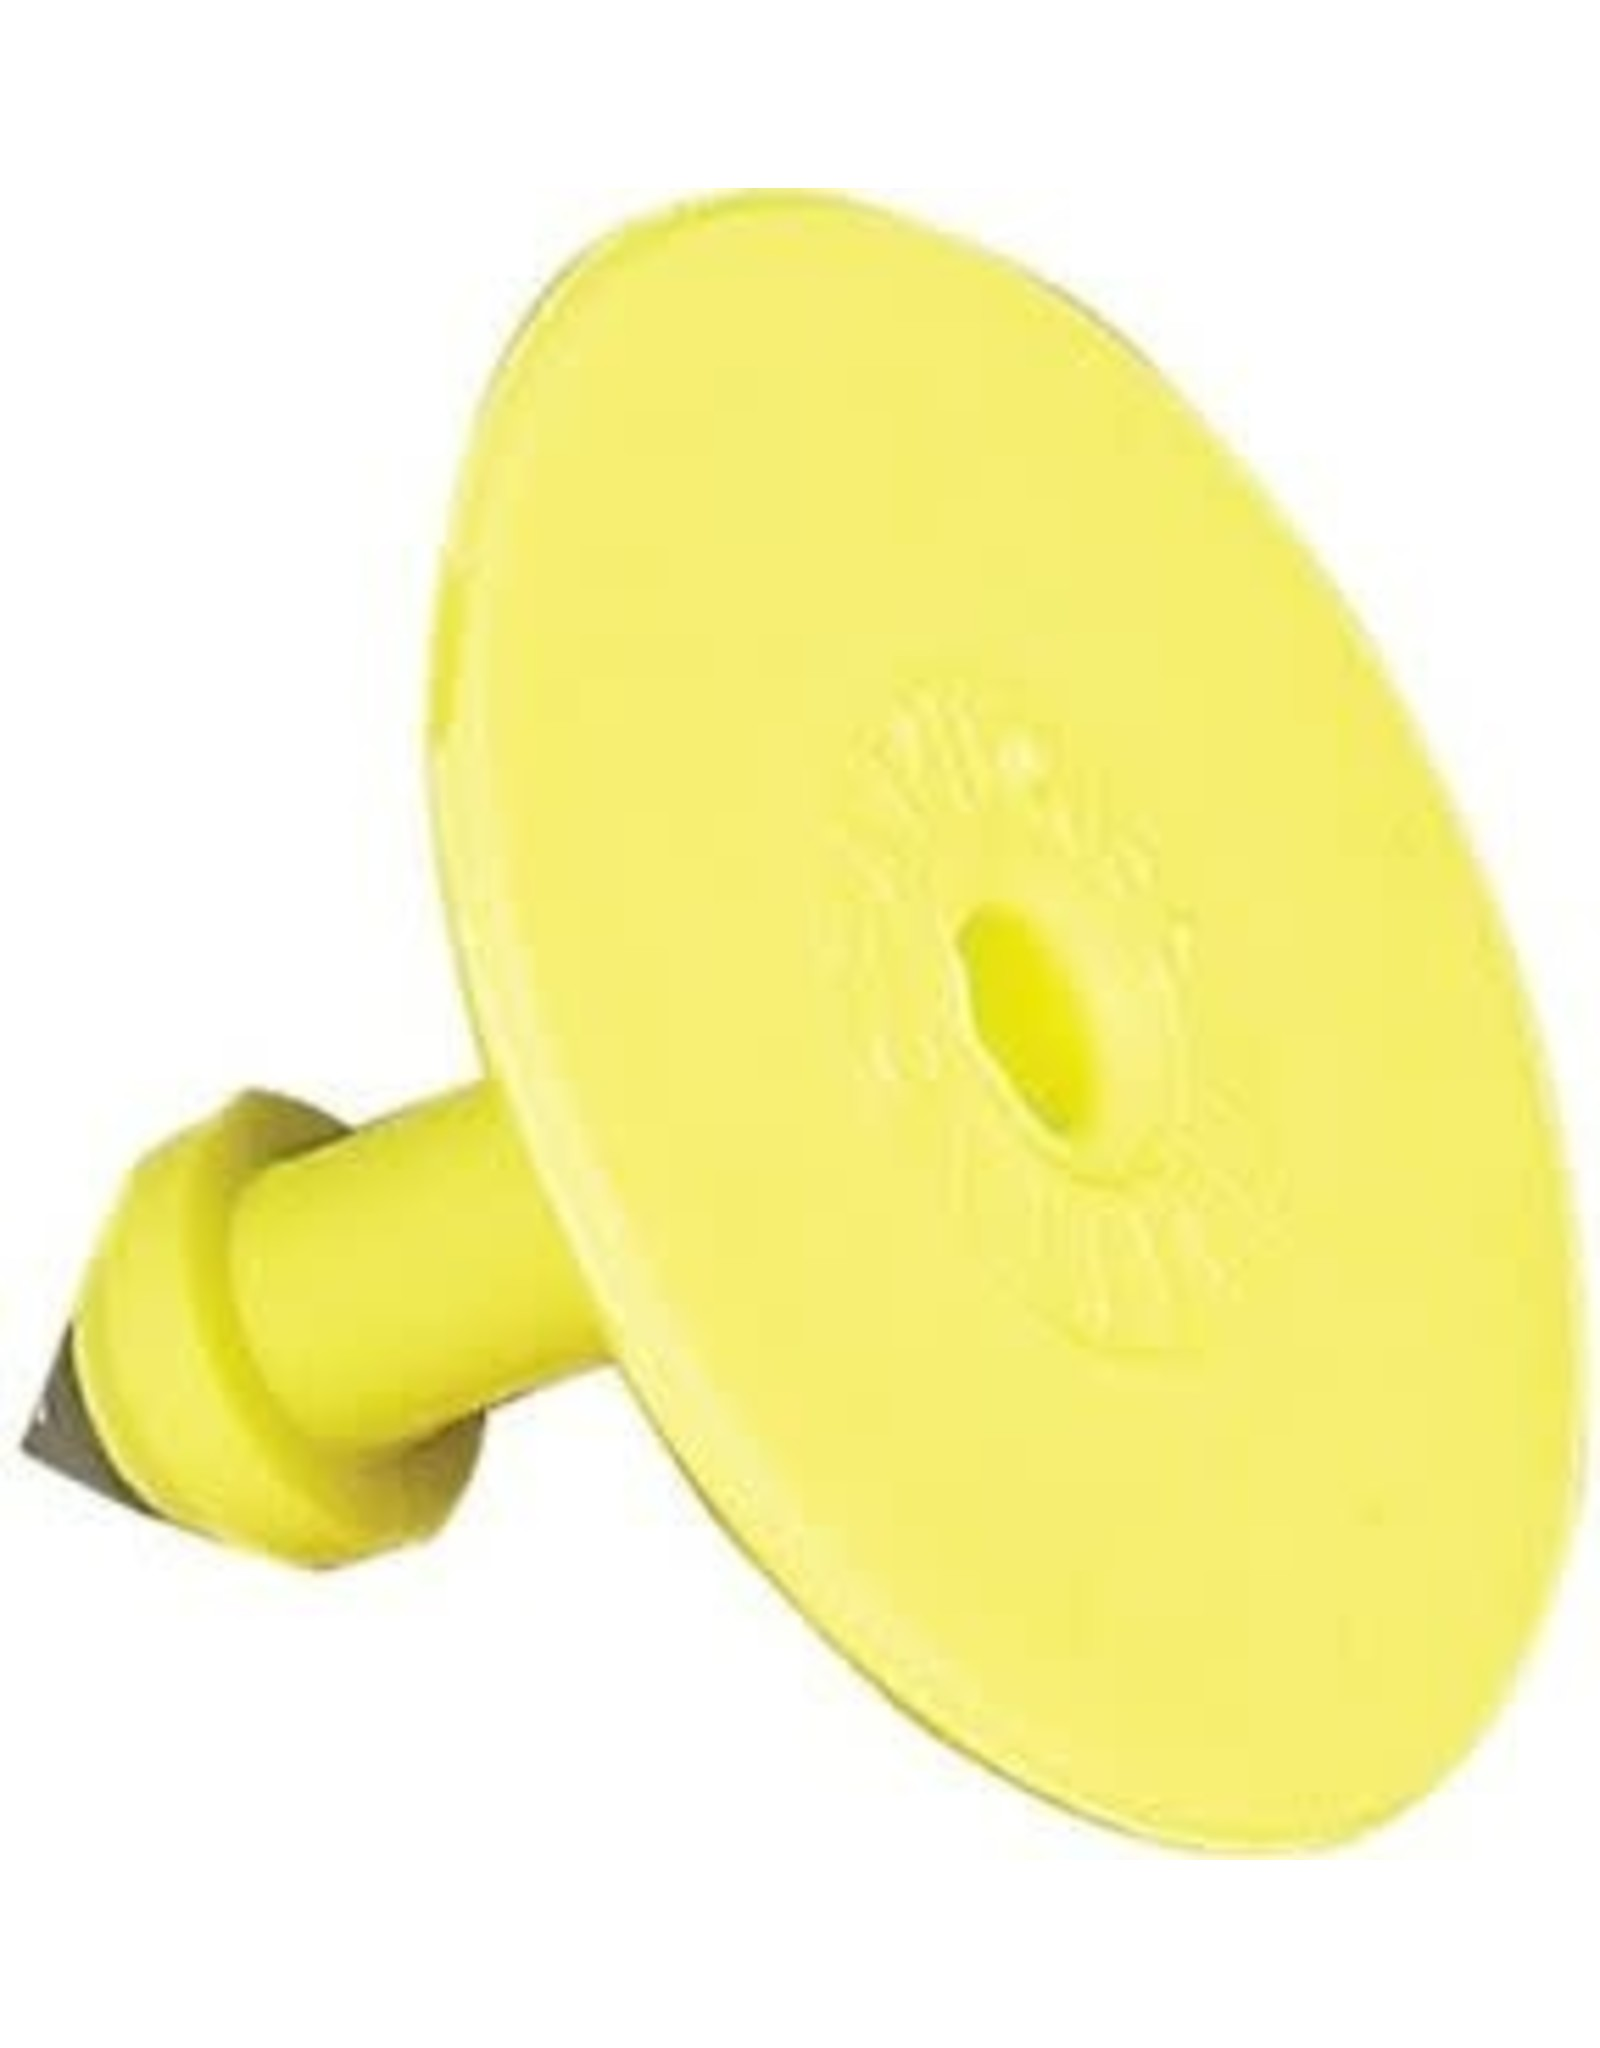 TAG* Allflex BUTTONS Sml Male 25s - Yellow  GSM-YE00